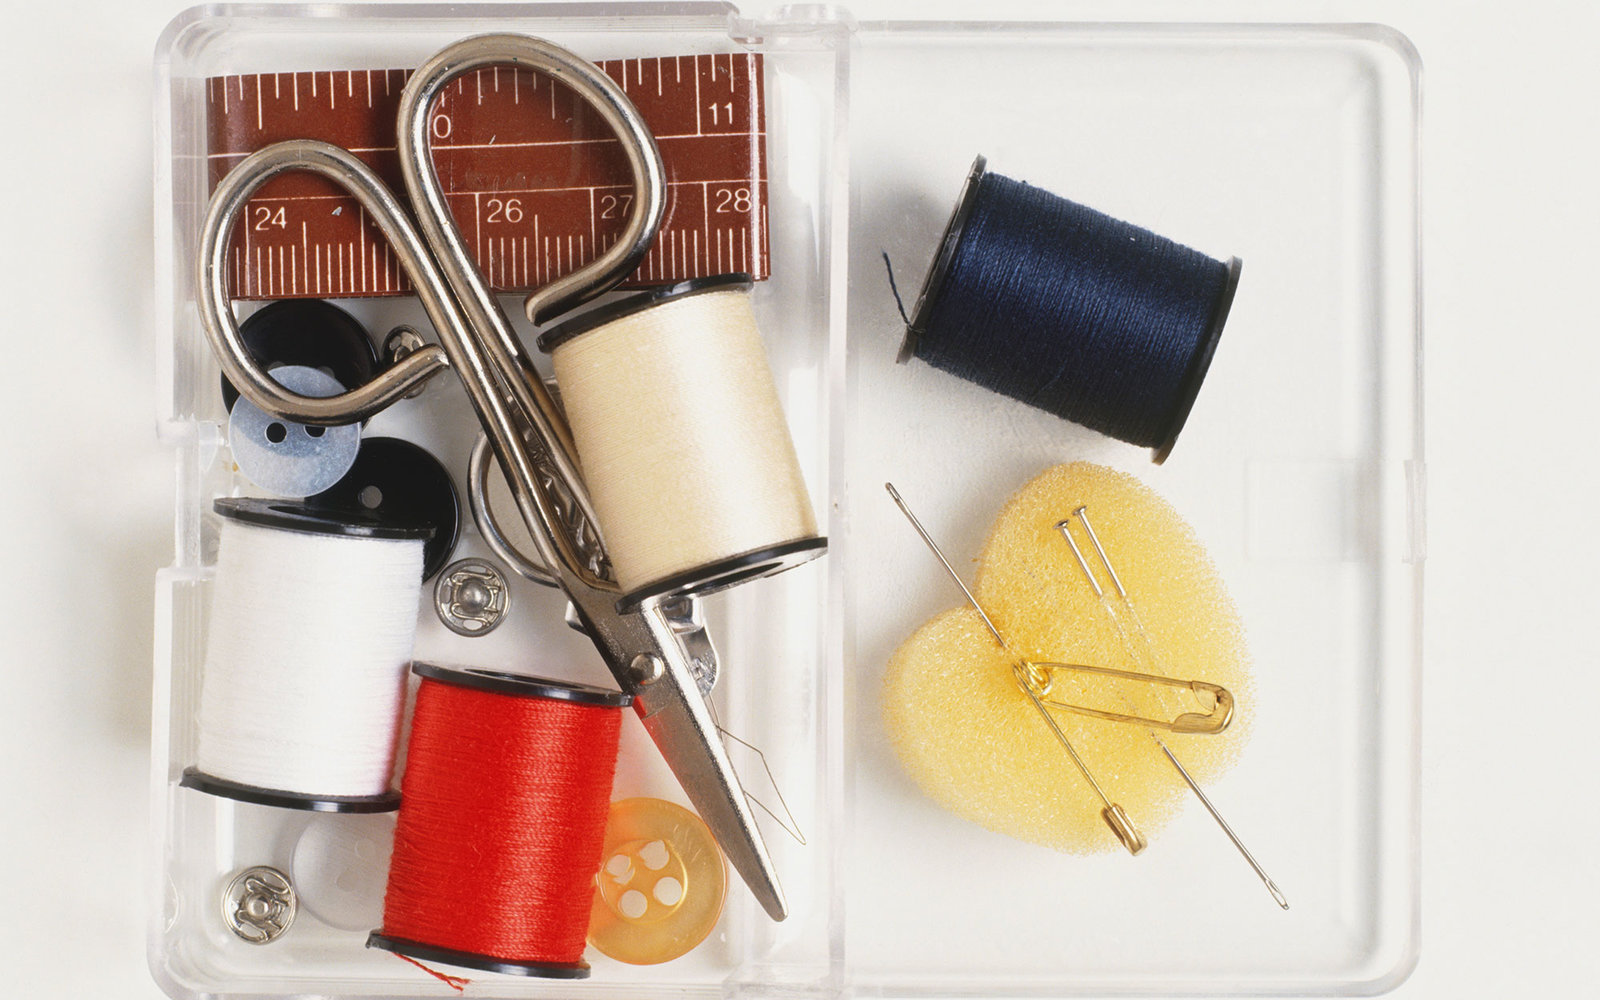 Compact sewing kit, view from above